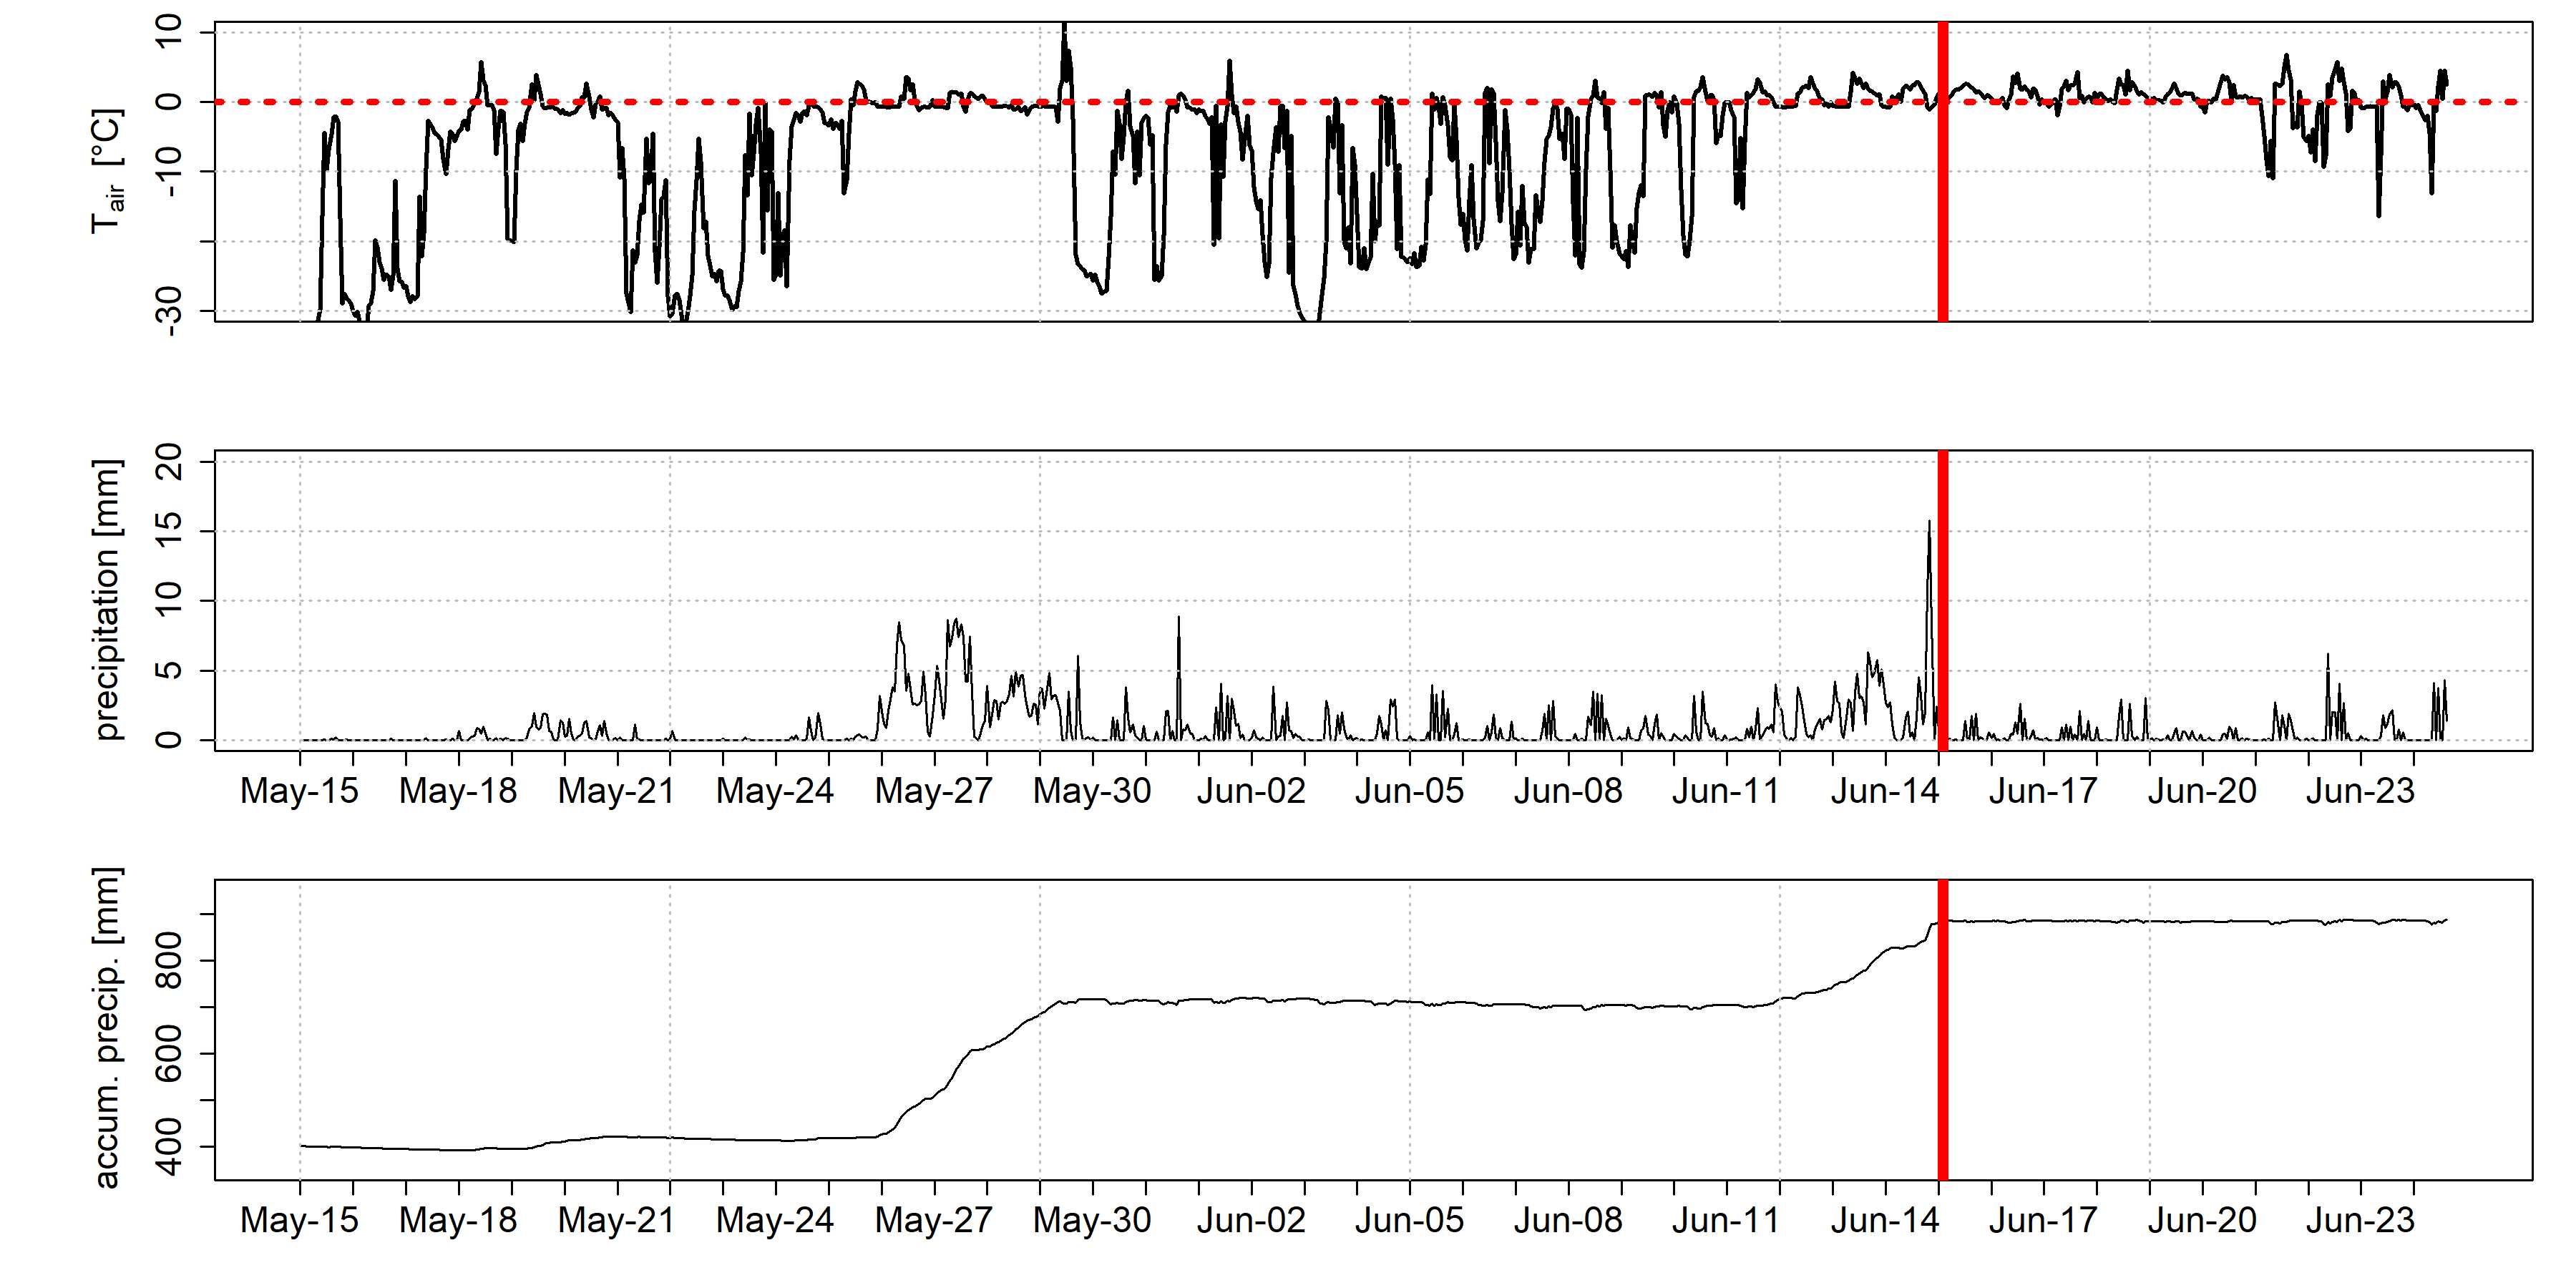 Climate data from AWS